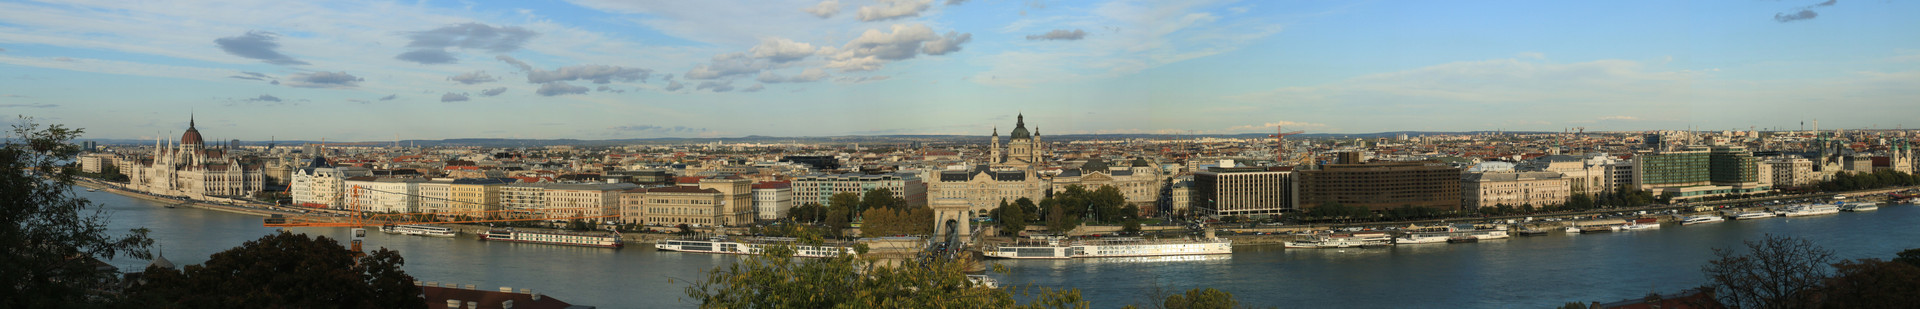 Pest, Hungary from Buda Castle